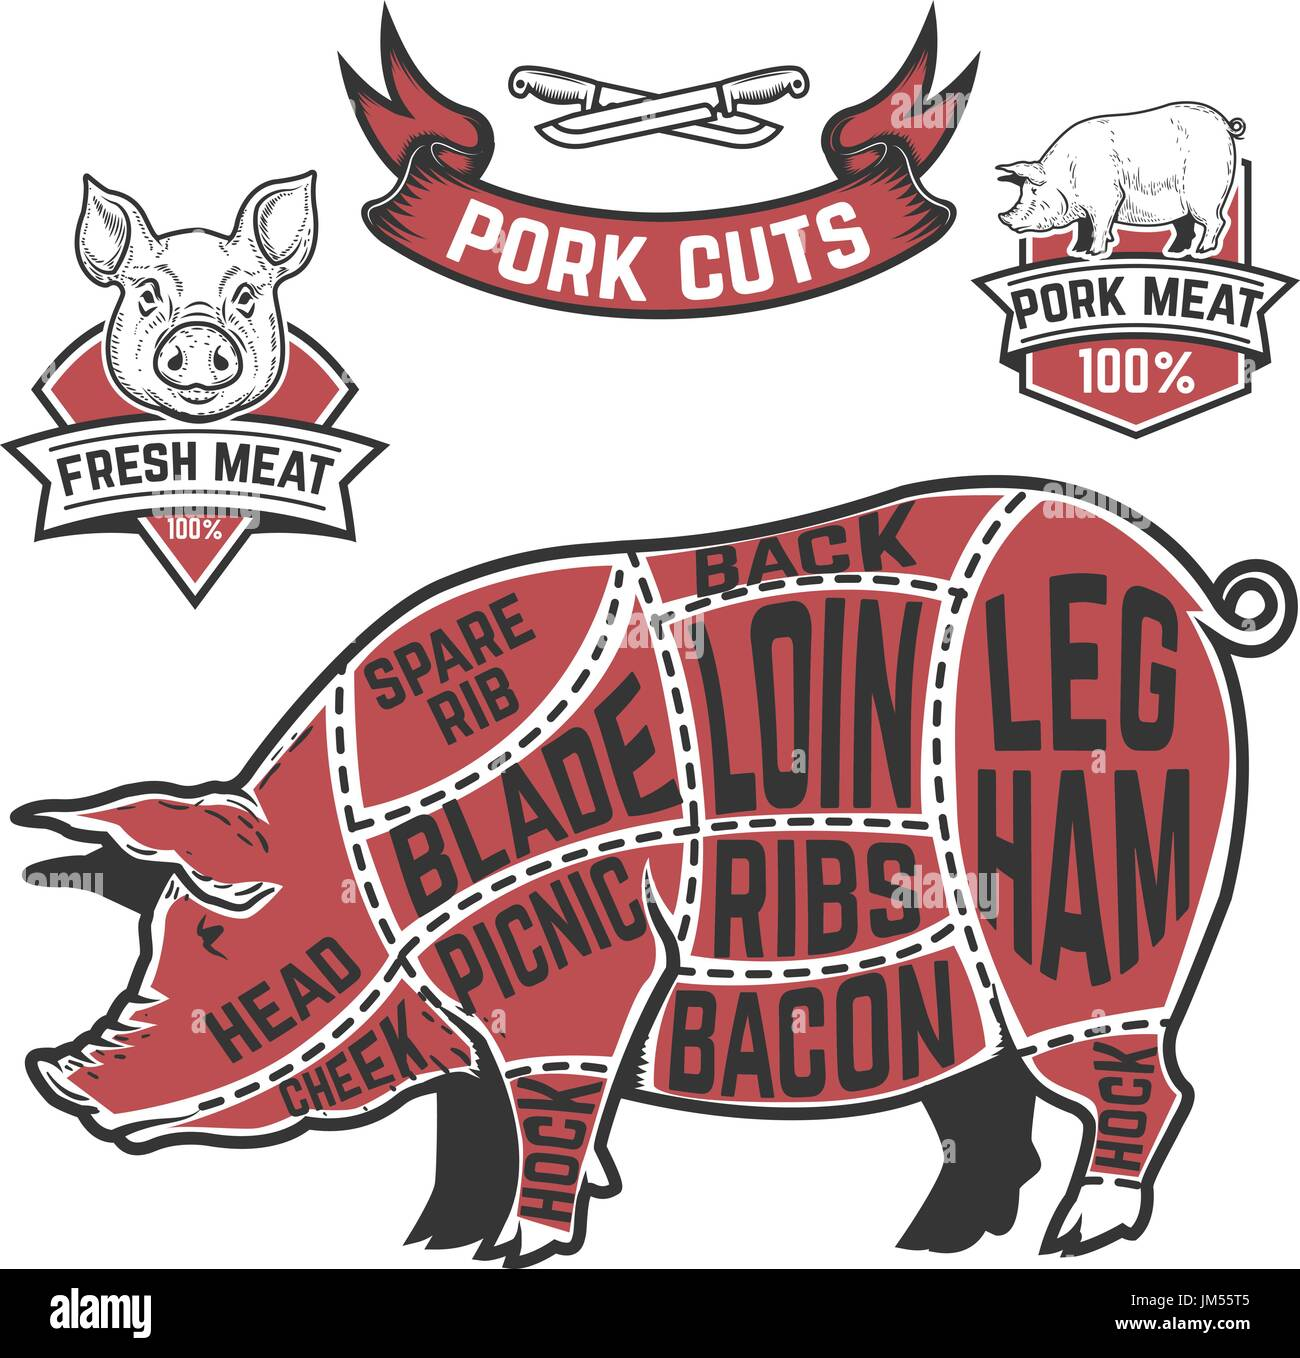 Pork cuts butcher diagram cow illustrations on white background pork cuts butcher diagram cow illustrations on white background design elements for poster menu vector illustration pooptronica